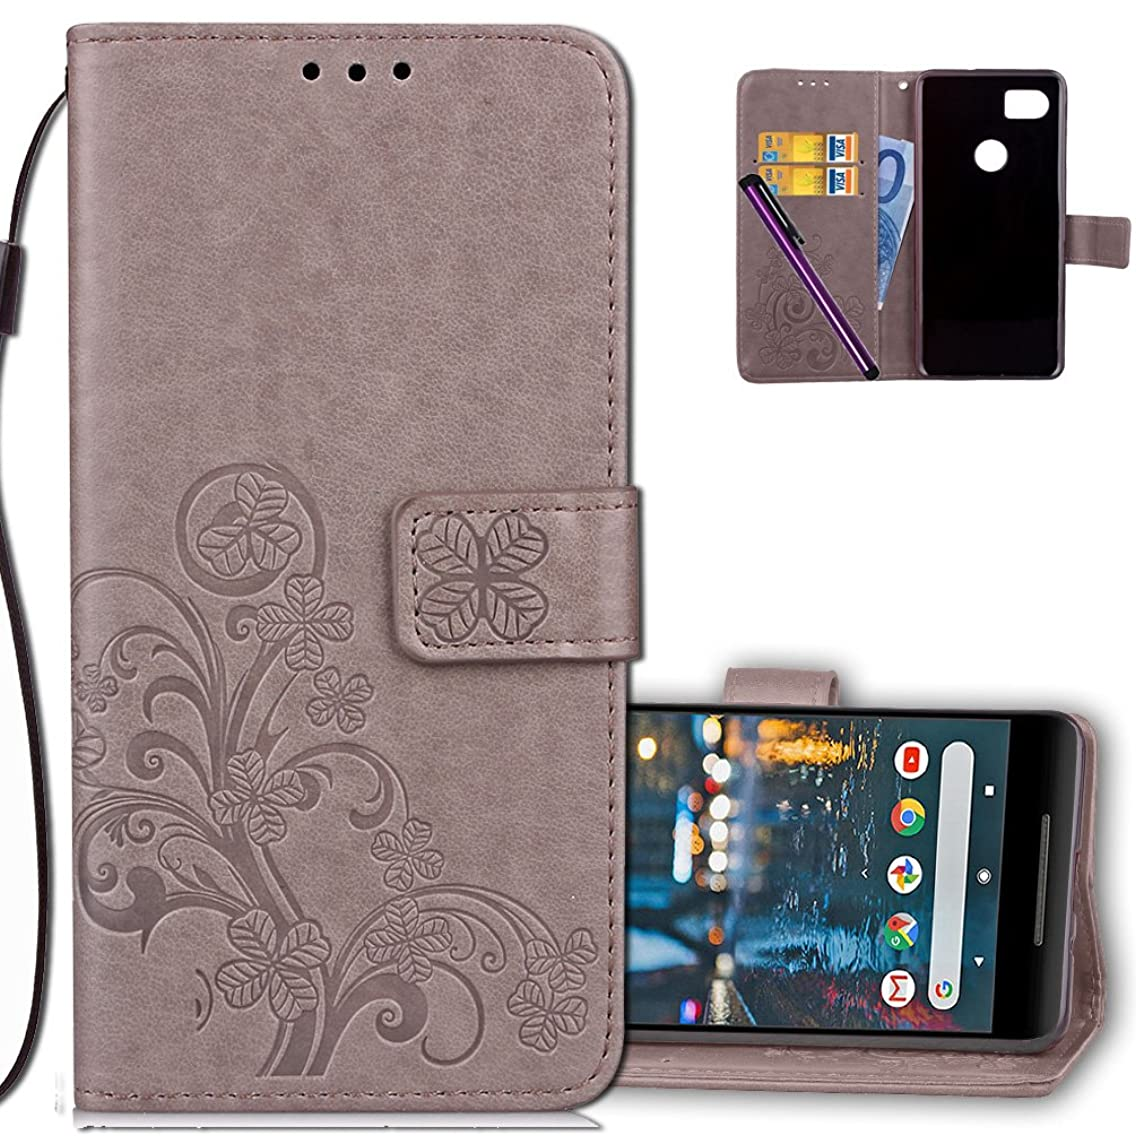 Google Pixel 2 XL Wallet Case Leather COTDINFORCA Premium PU Embossed Design Magnetic Closure Protective Cover with Card Slots for Google Pixel 2 XL (6.0 inch). Luck Clover Grey